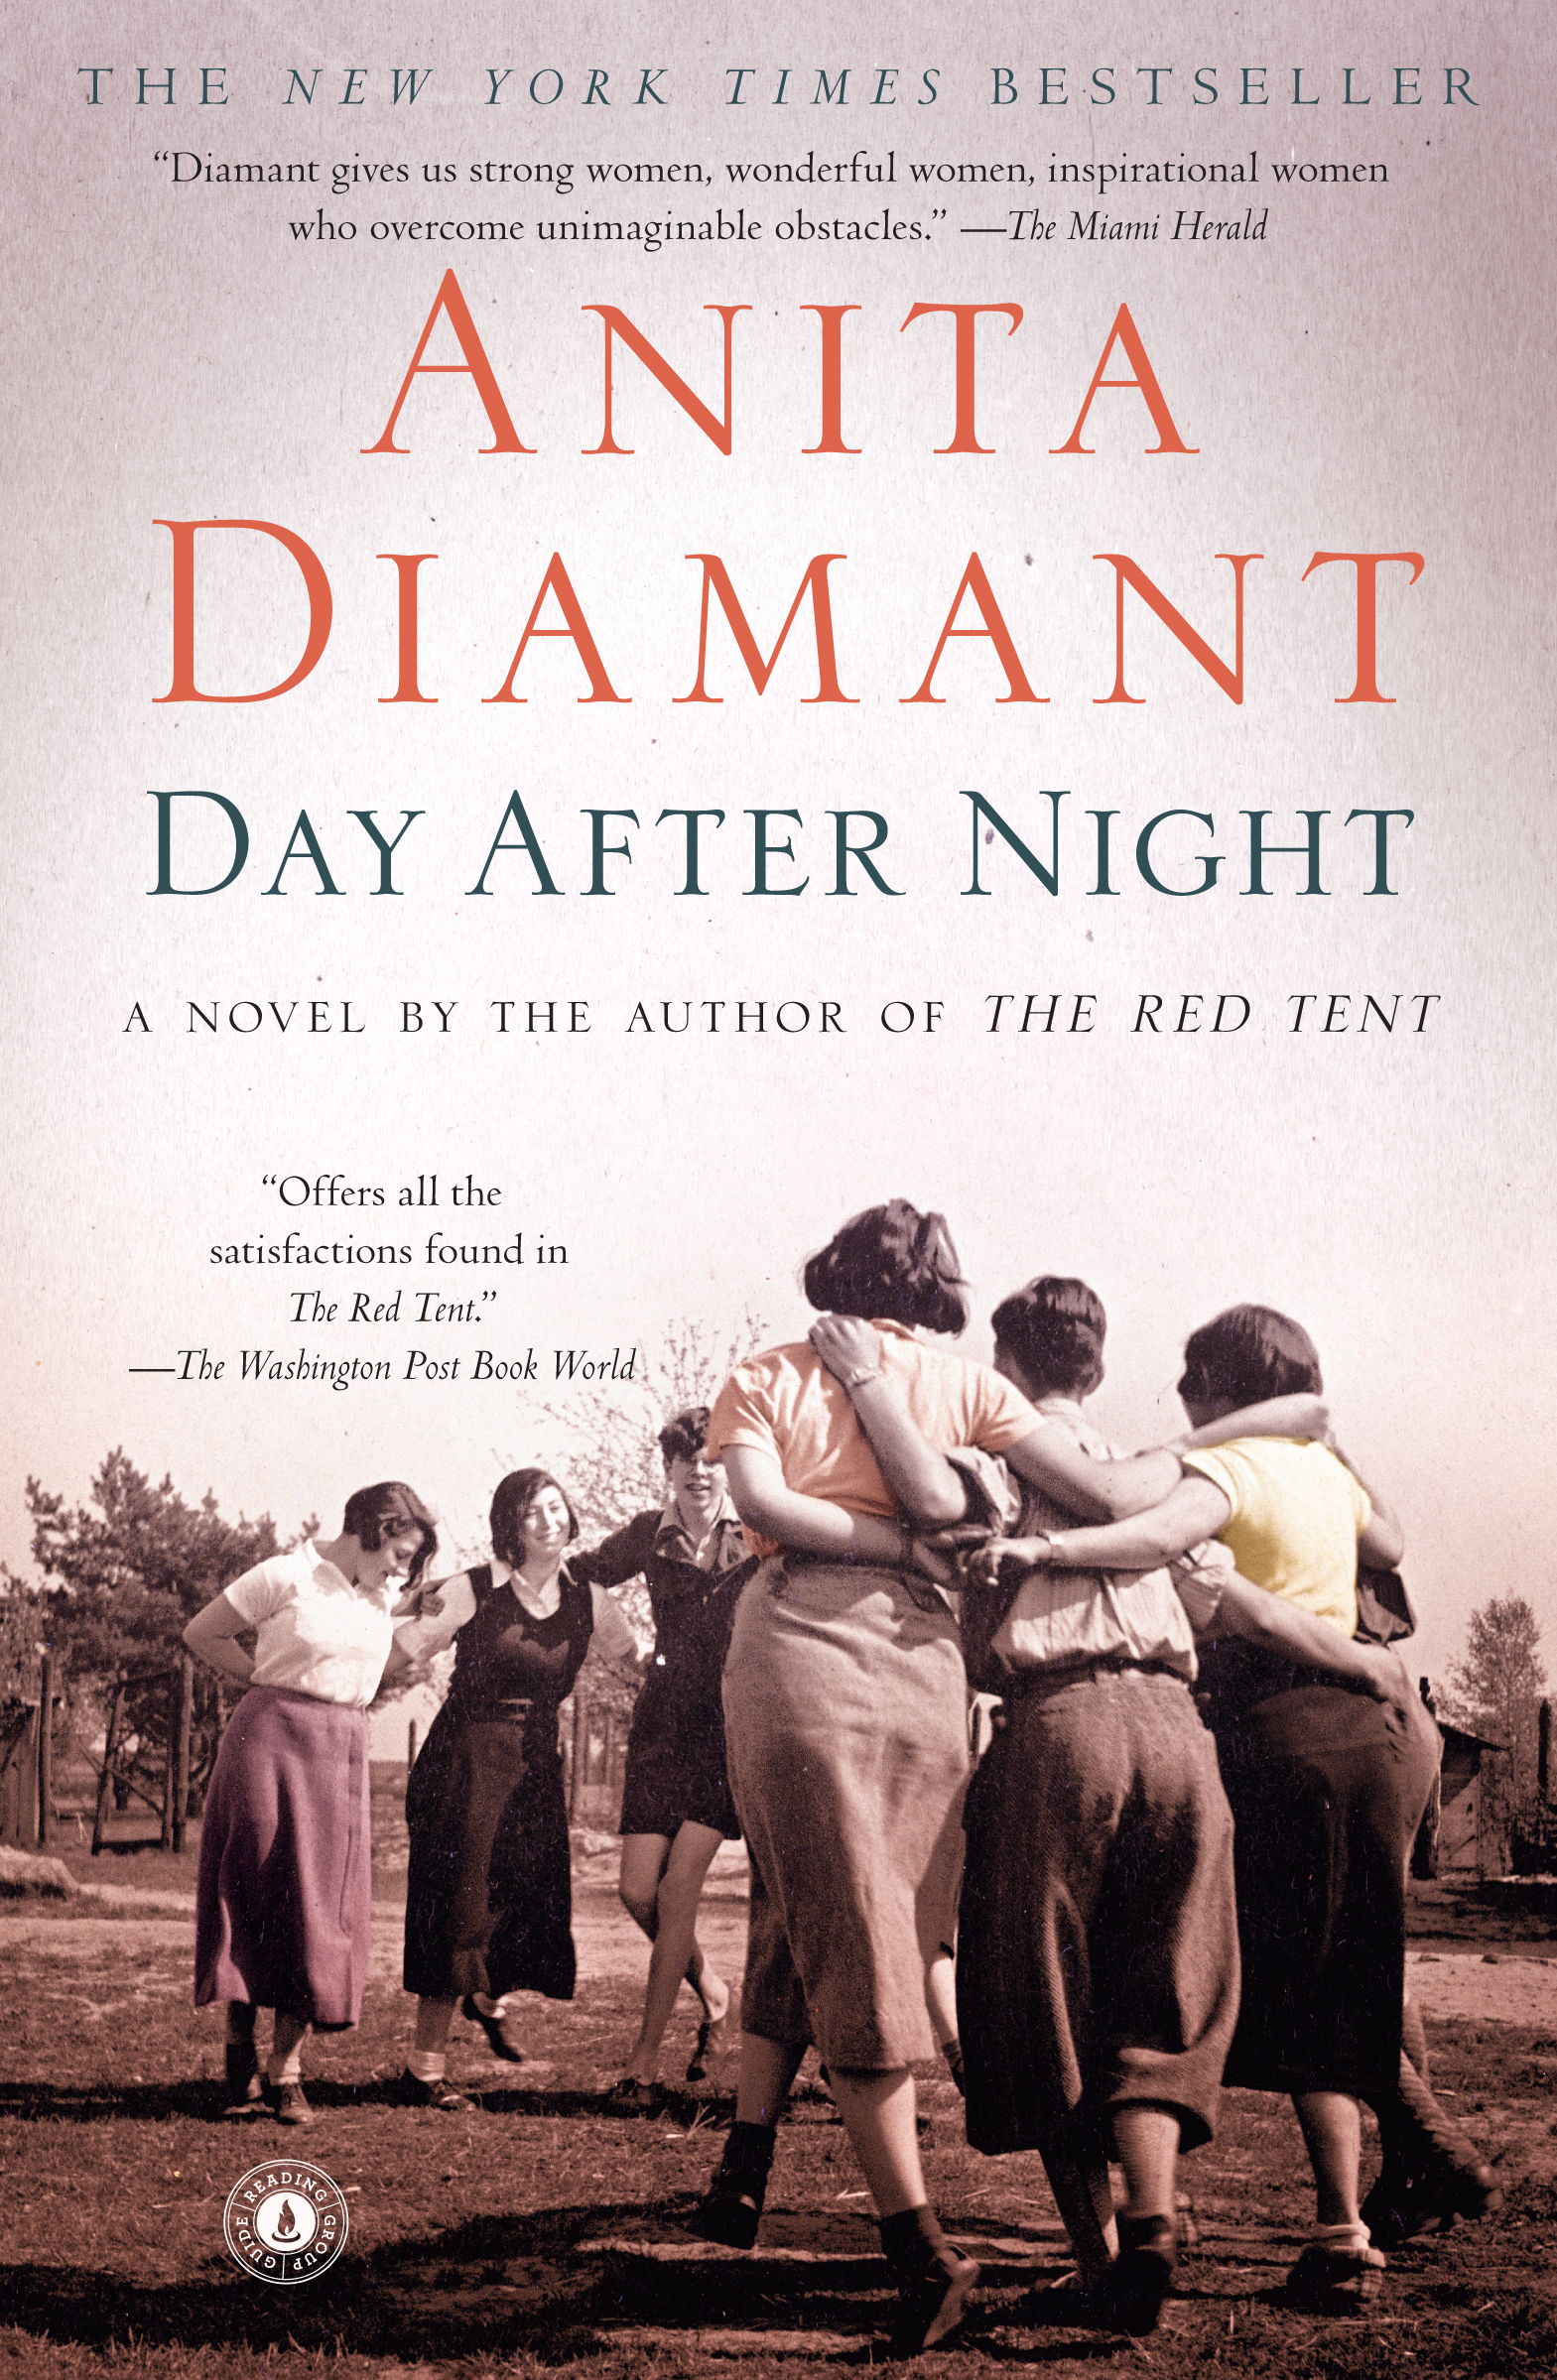 day after night by anita diamant biography